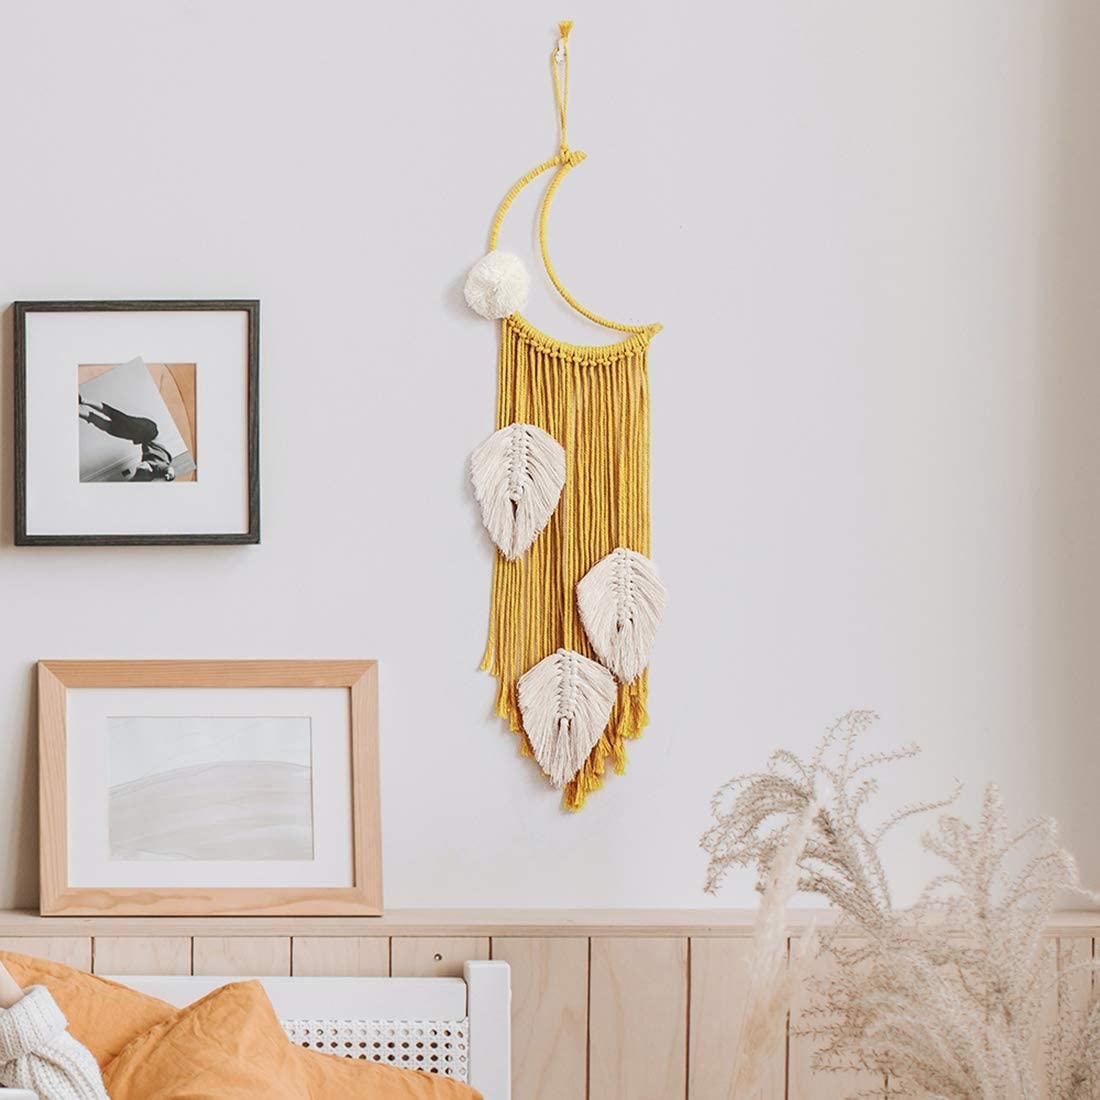 JOXJOZ Moon Macrame Wall Hanging Feather Dream Catches-Boho Tapestry Cotton Woven Home Decor Handmade Decoration for Kids Room Party Wedding Ornament Craft Gift (Yellow)